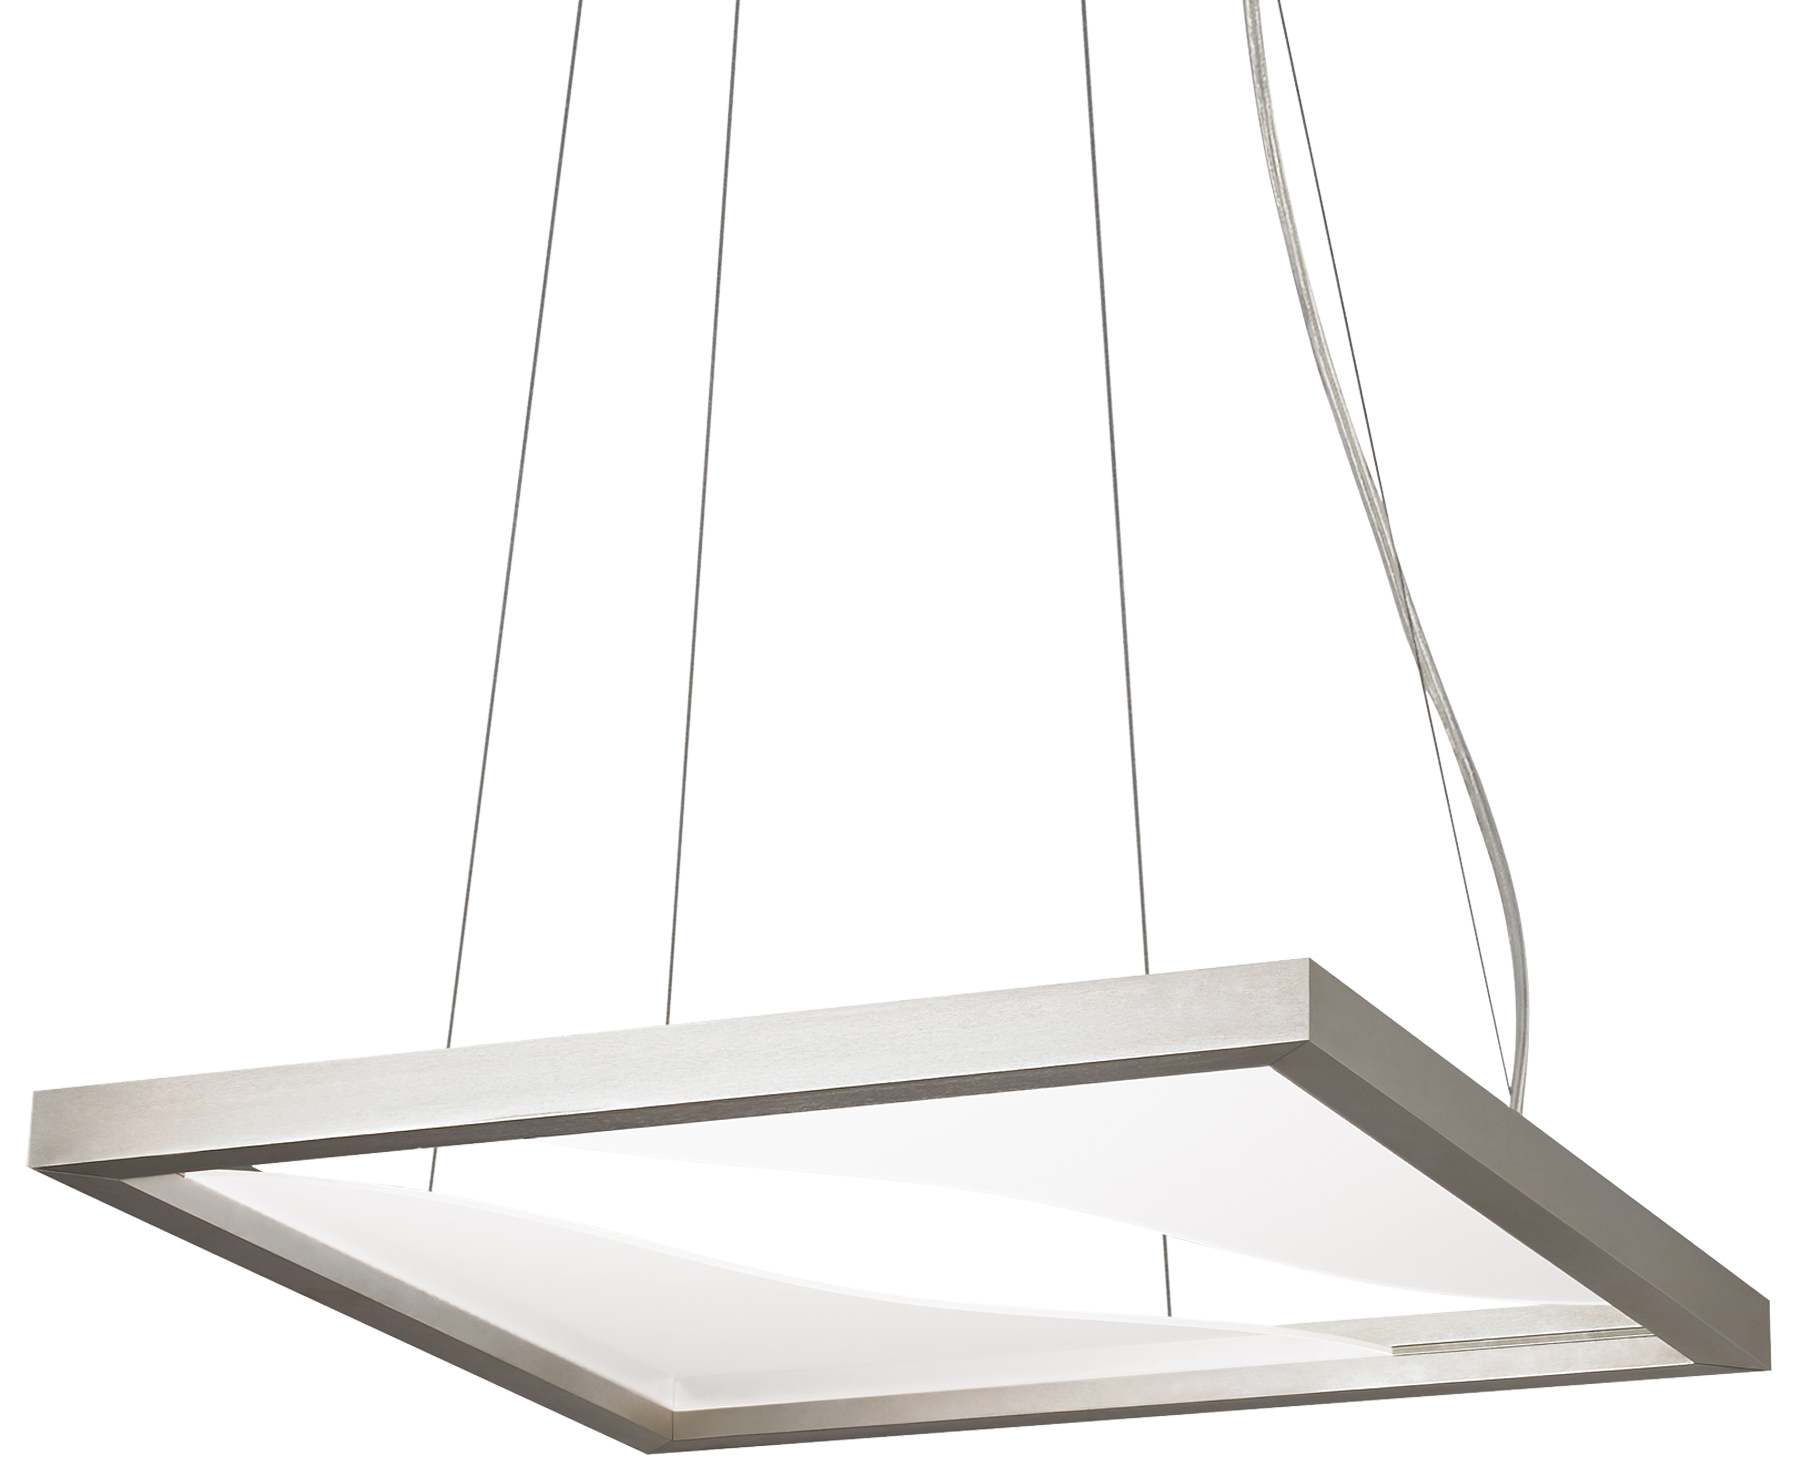 Lbl lighting new arrivals lightstyle of tampa bay